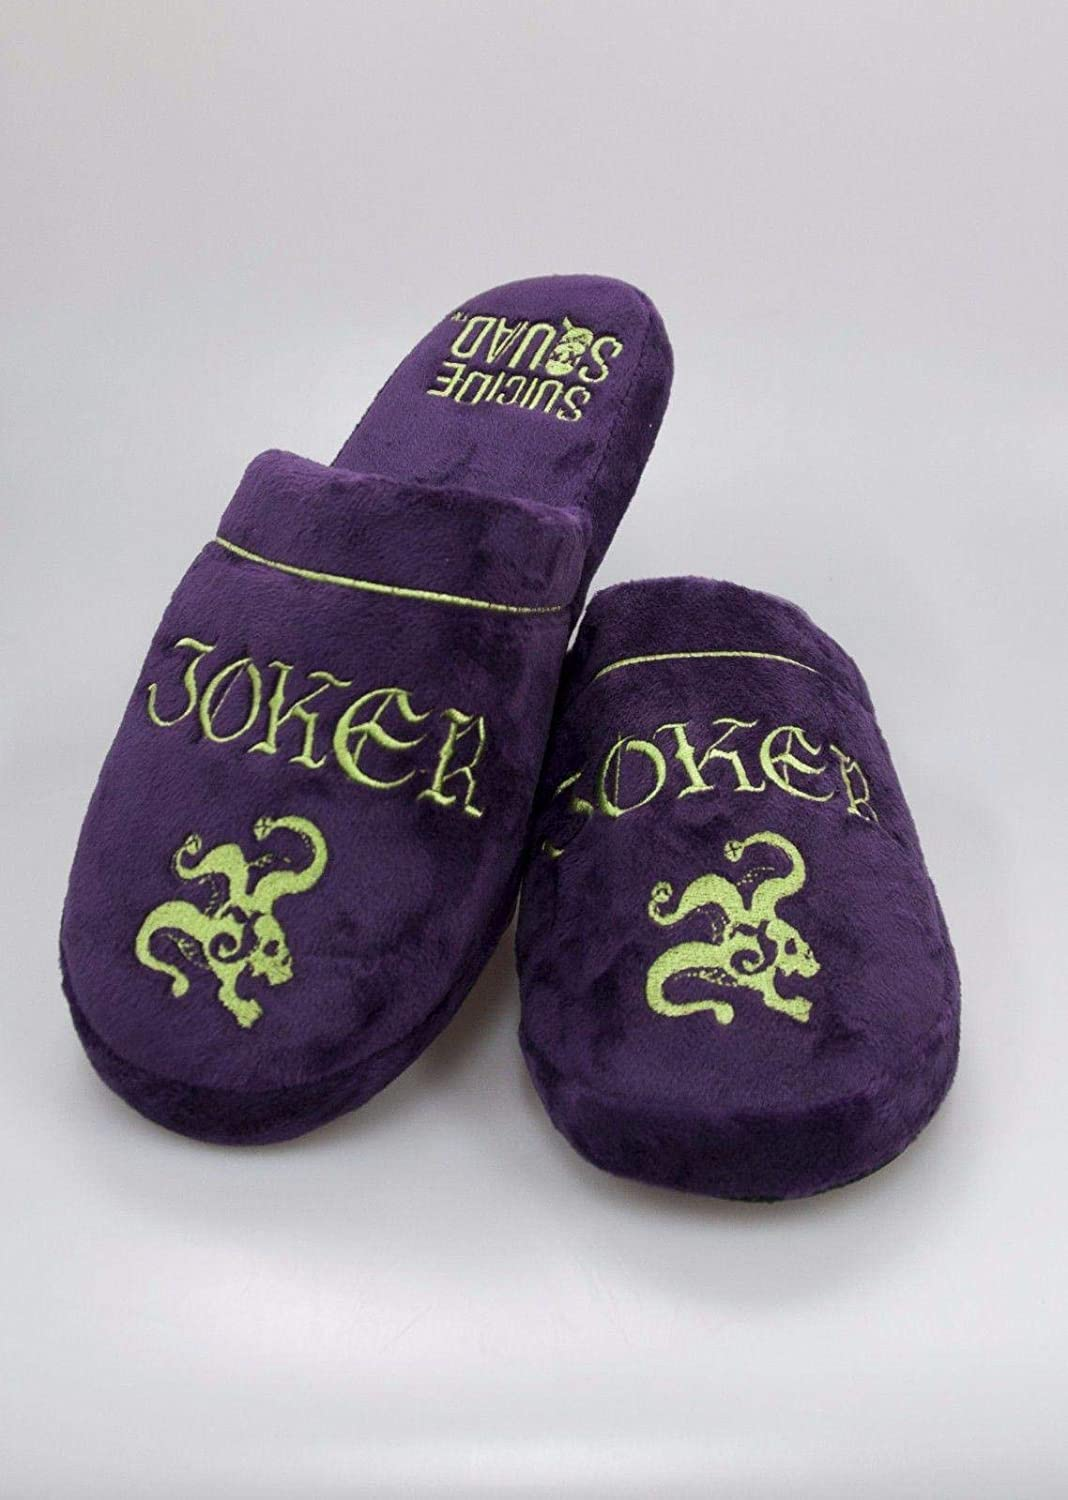 Joker Purple Adult Mule Slippers Large 8-10